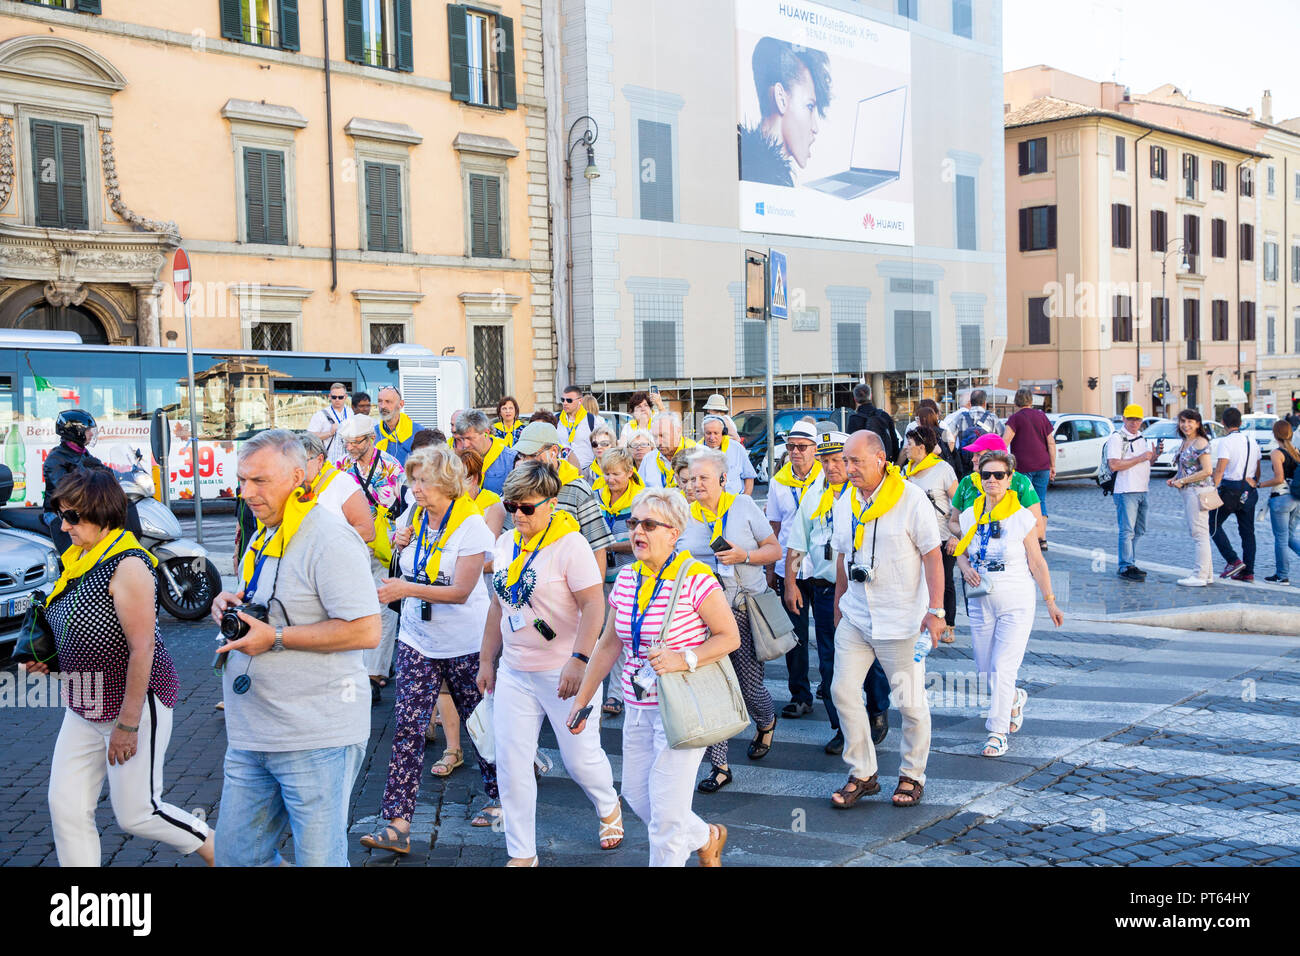 Organised tour group in Rome with tourists wearing yellow scarves,Rome,Italy - Stock Image